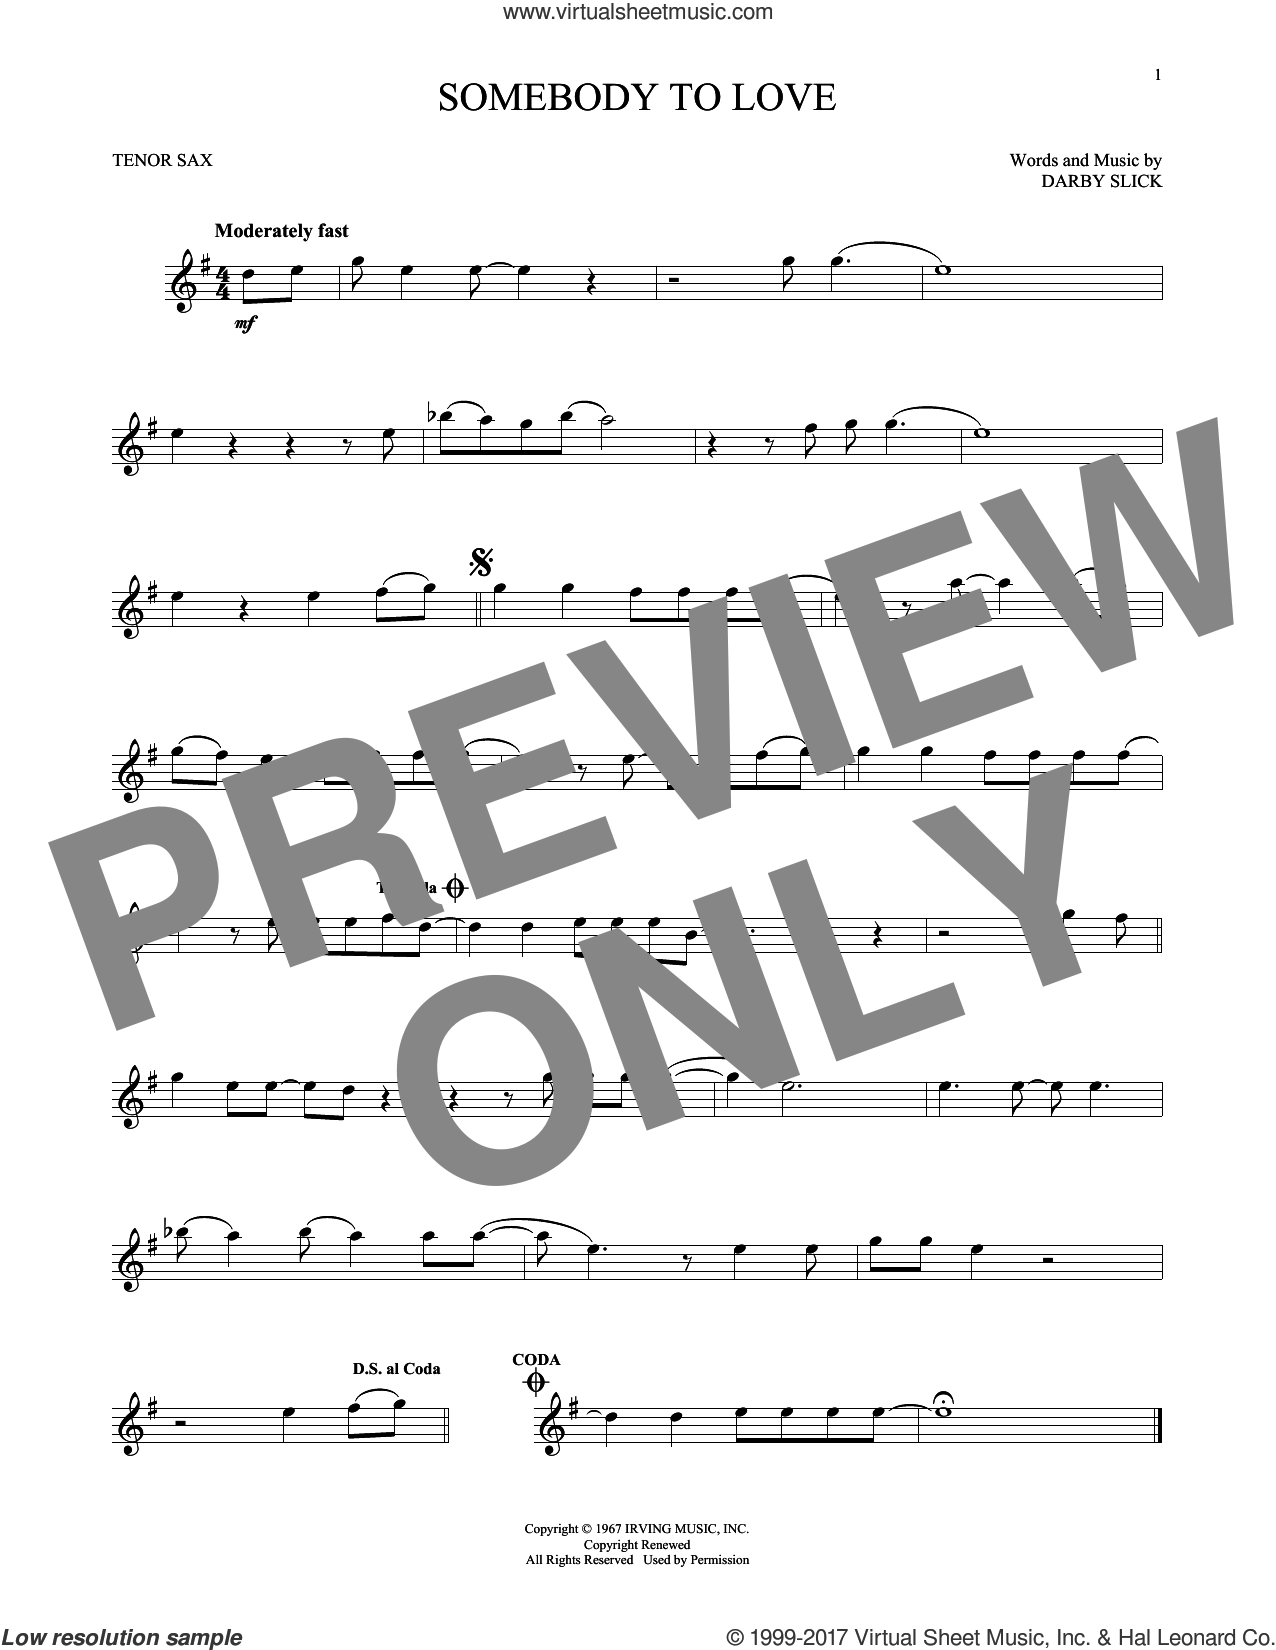 Somebody To Love sheet music for tenor saxophone solo by Jefferson Airplane and Darby Slick, intermediate skill level